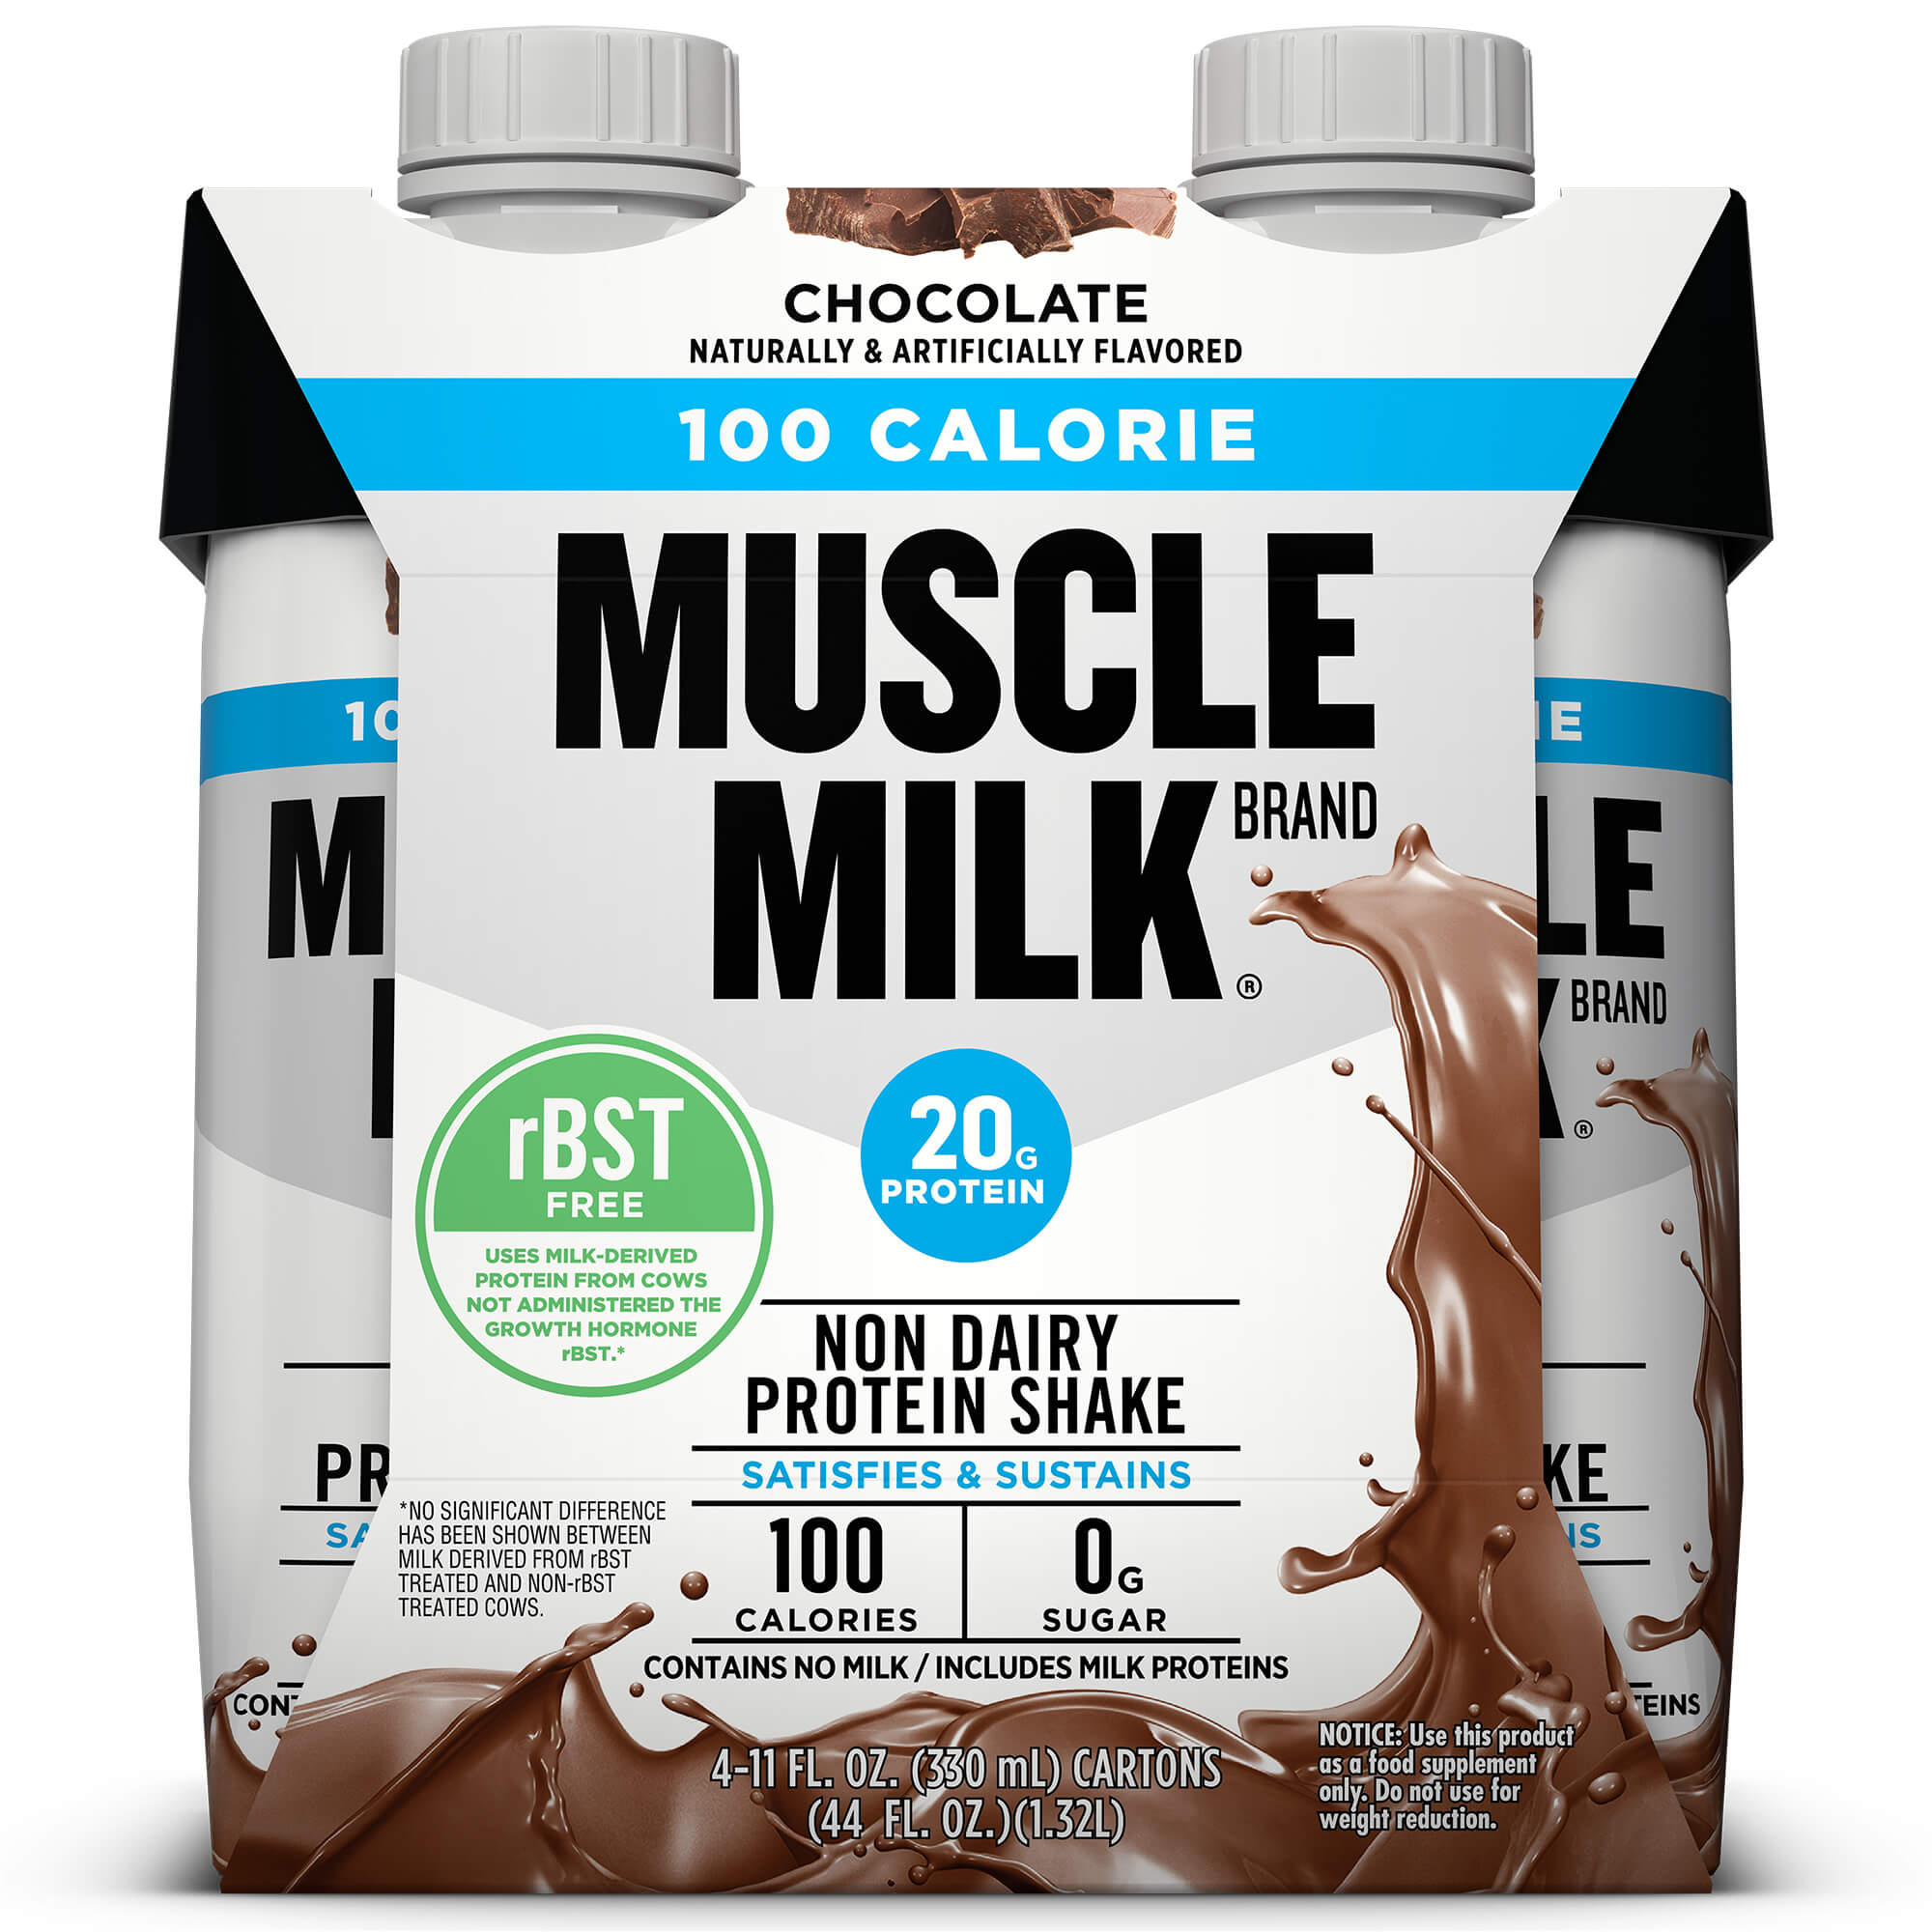 Muscle Milk 100 Calorie Non-Dairy Protein Shake, Chocolate, 20g Protein, Ready to Drink, 11 fl. oz., 4-Pack